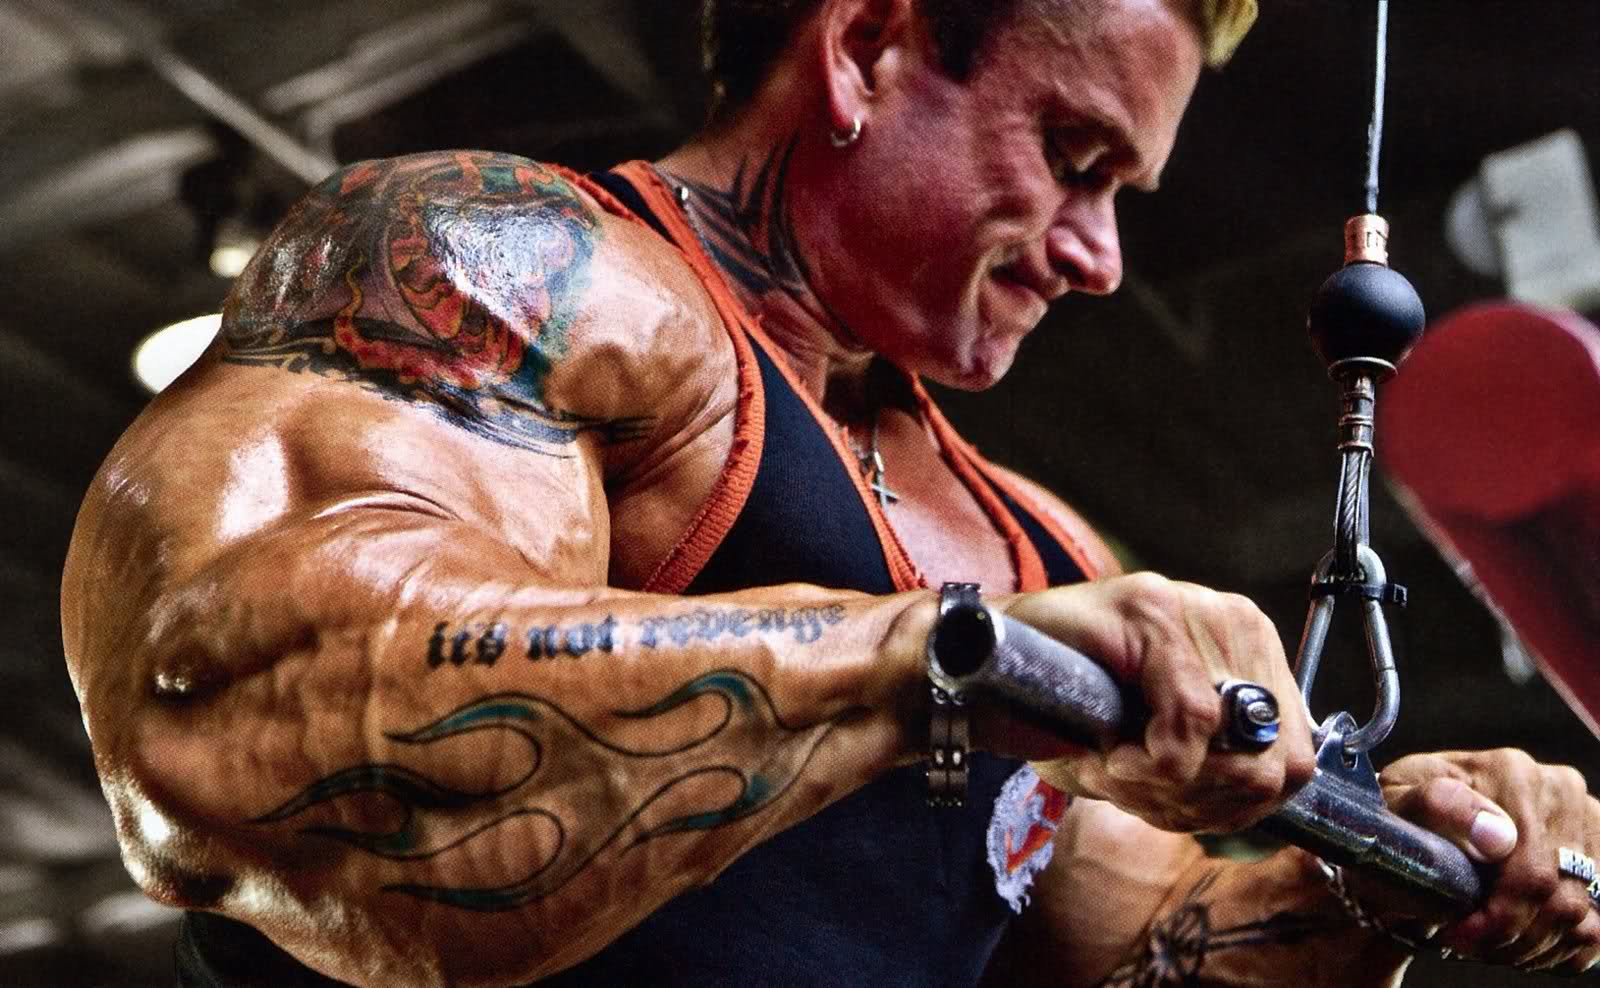 Bodybuilding and Tattoos